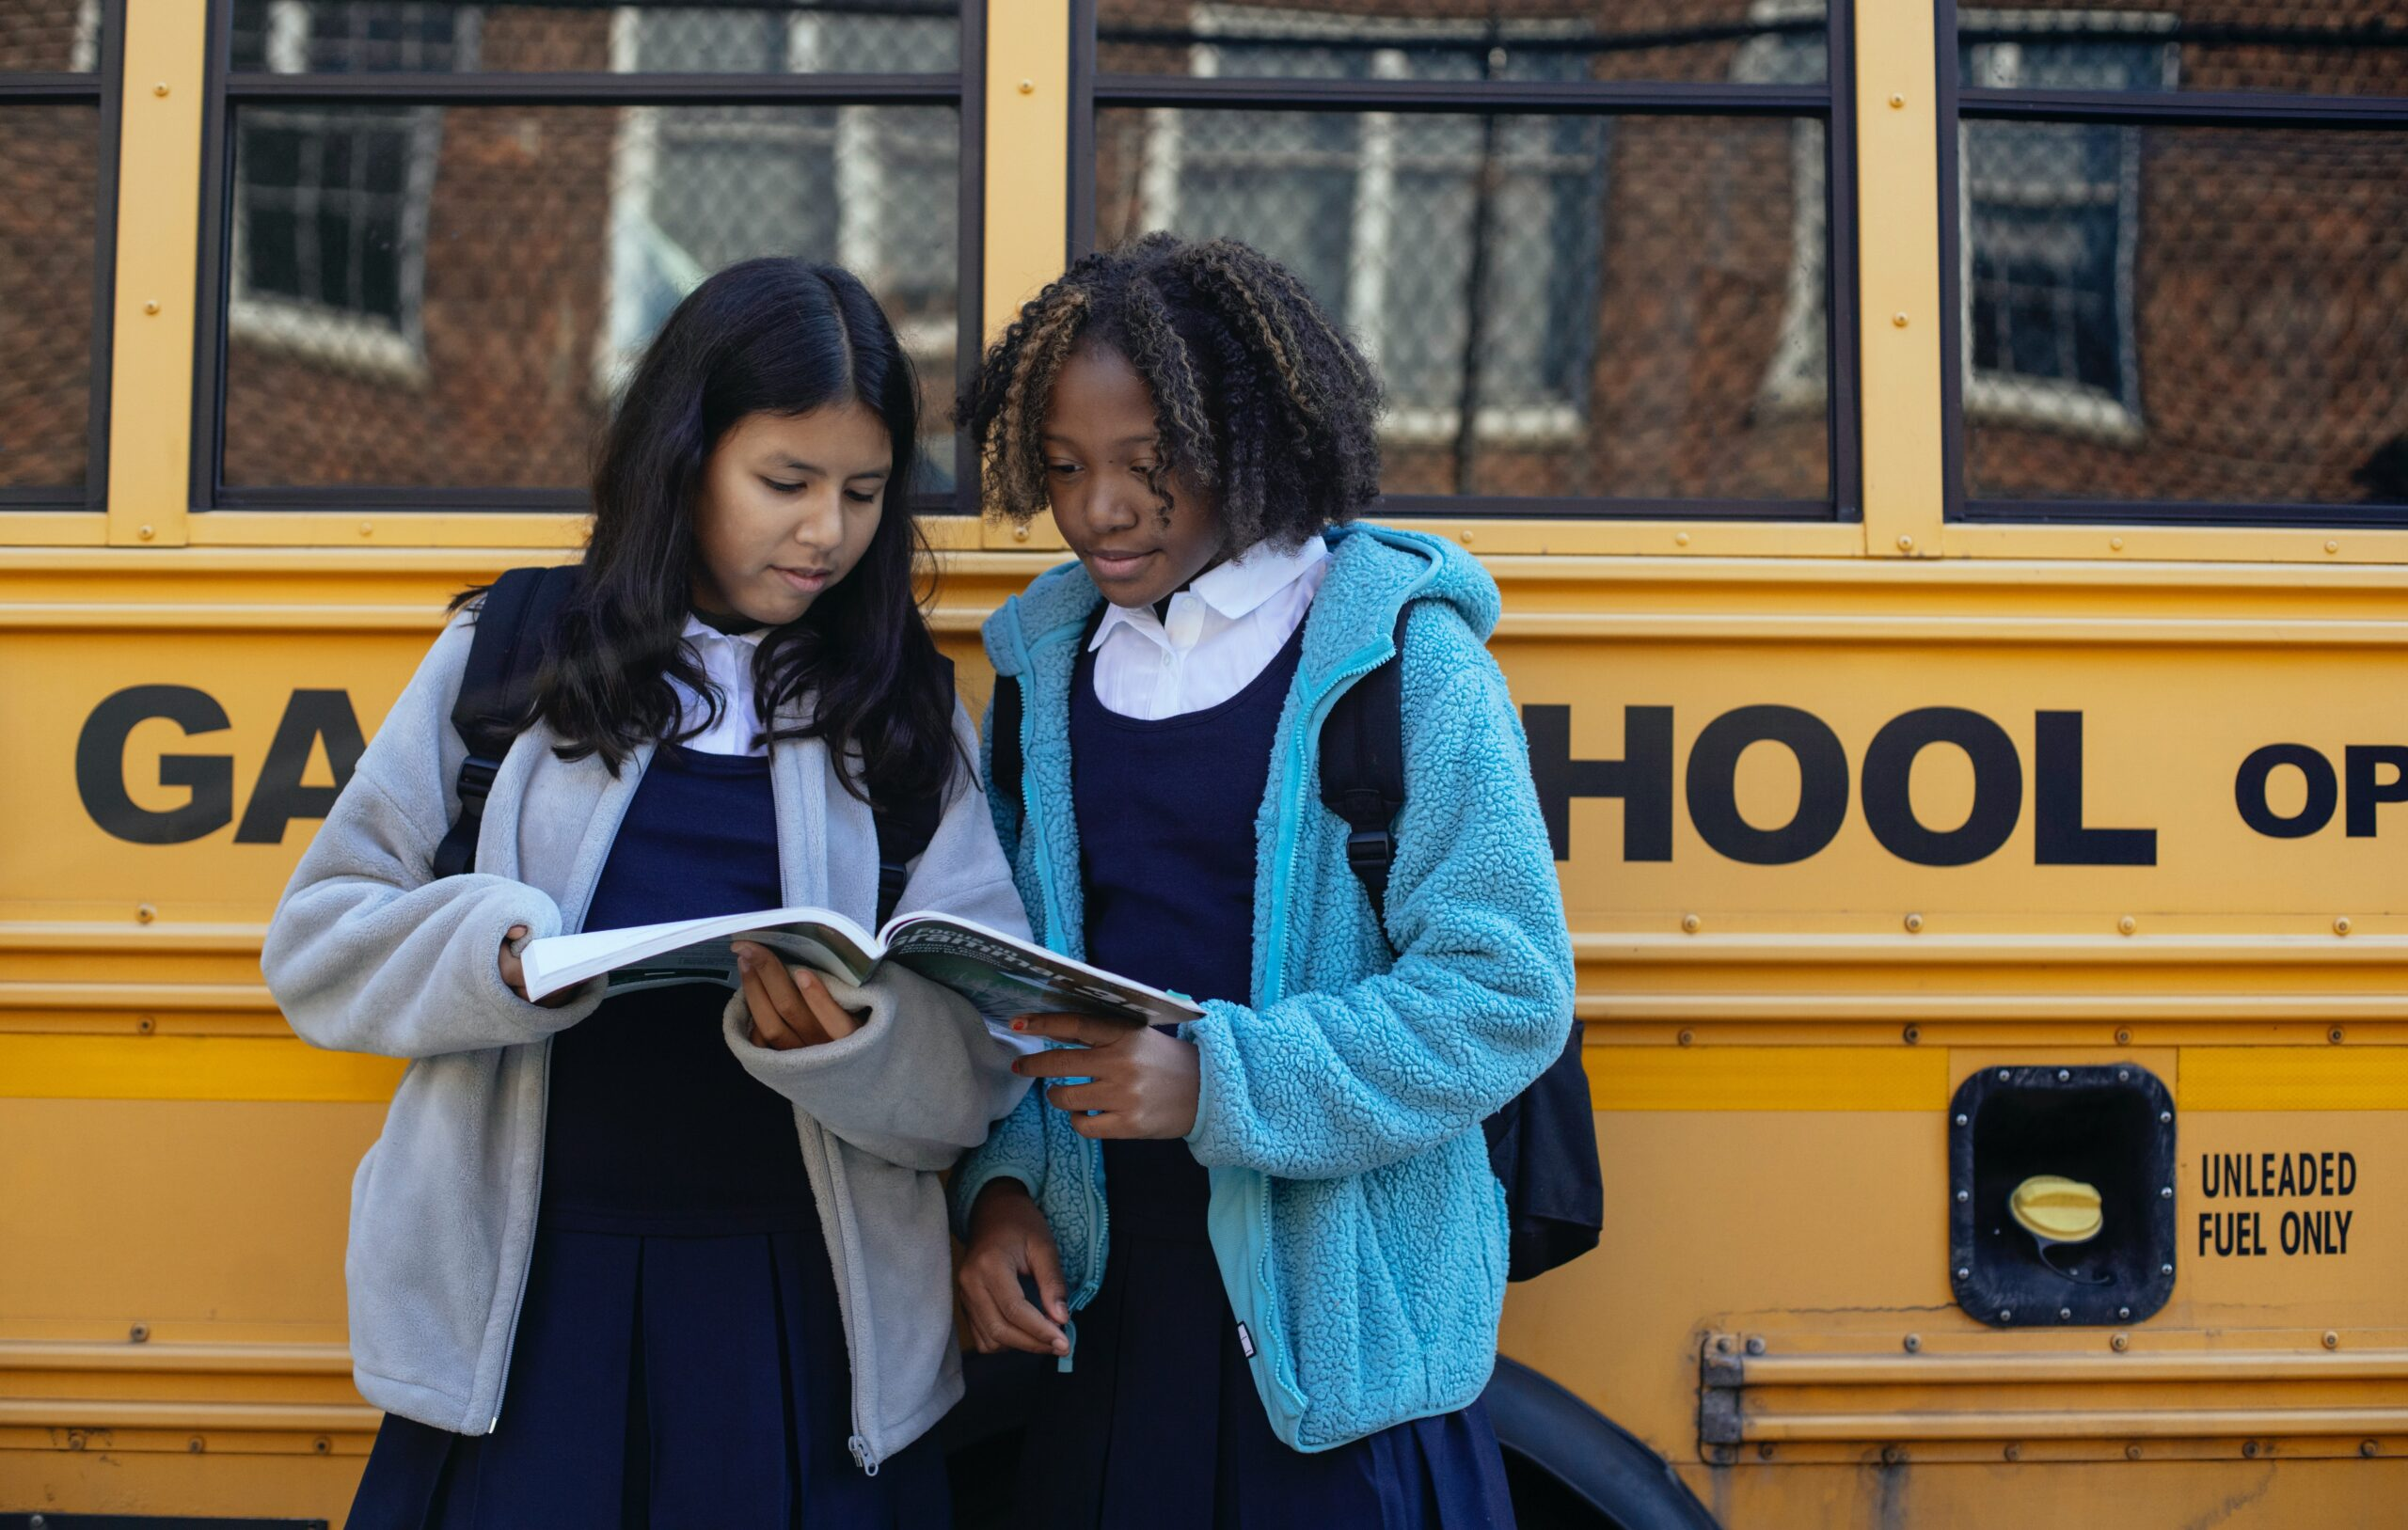 two girls dressed in school uniforms reading a textbook standing up